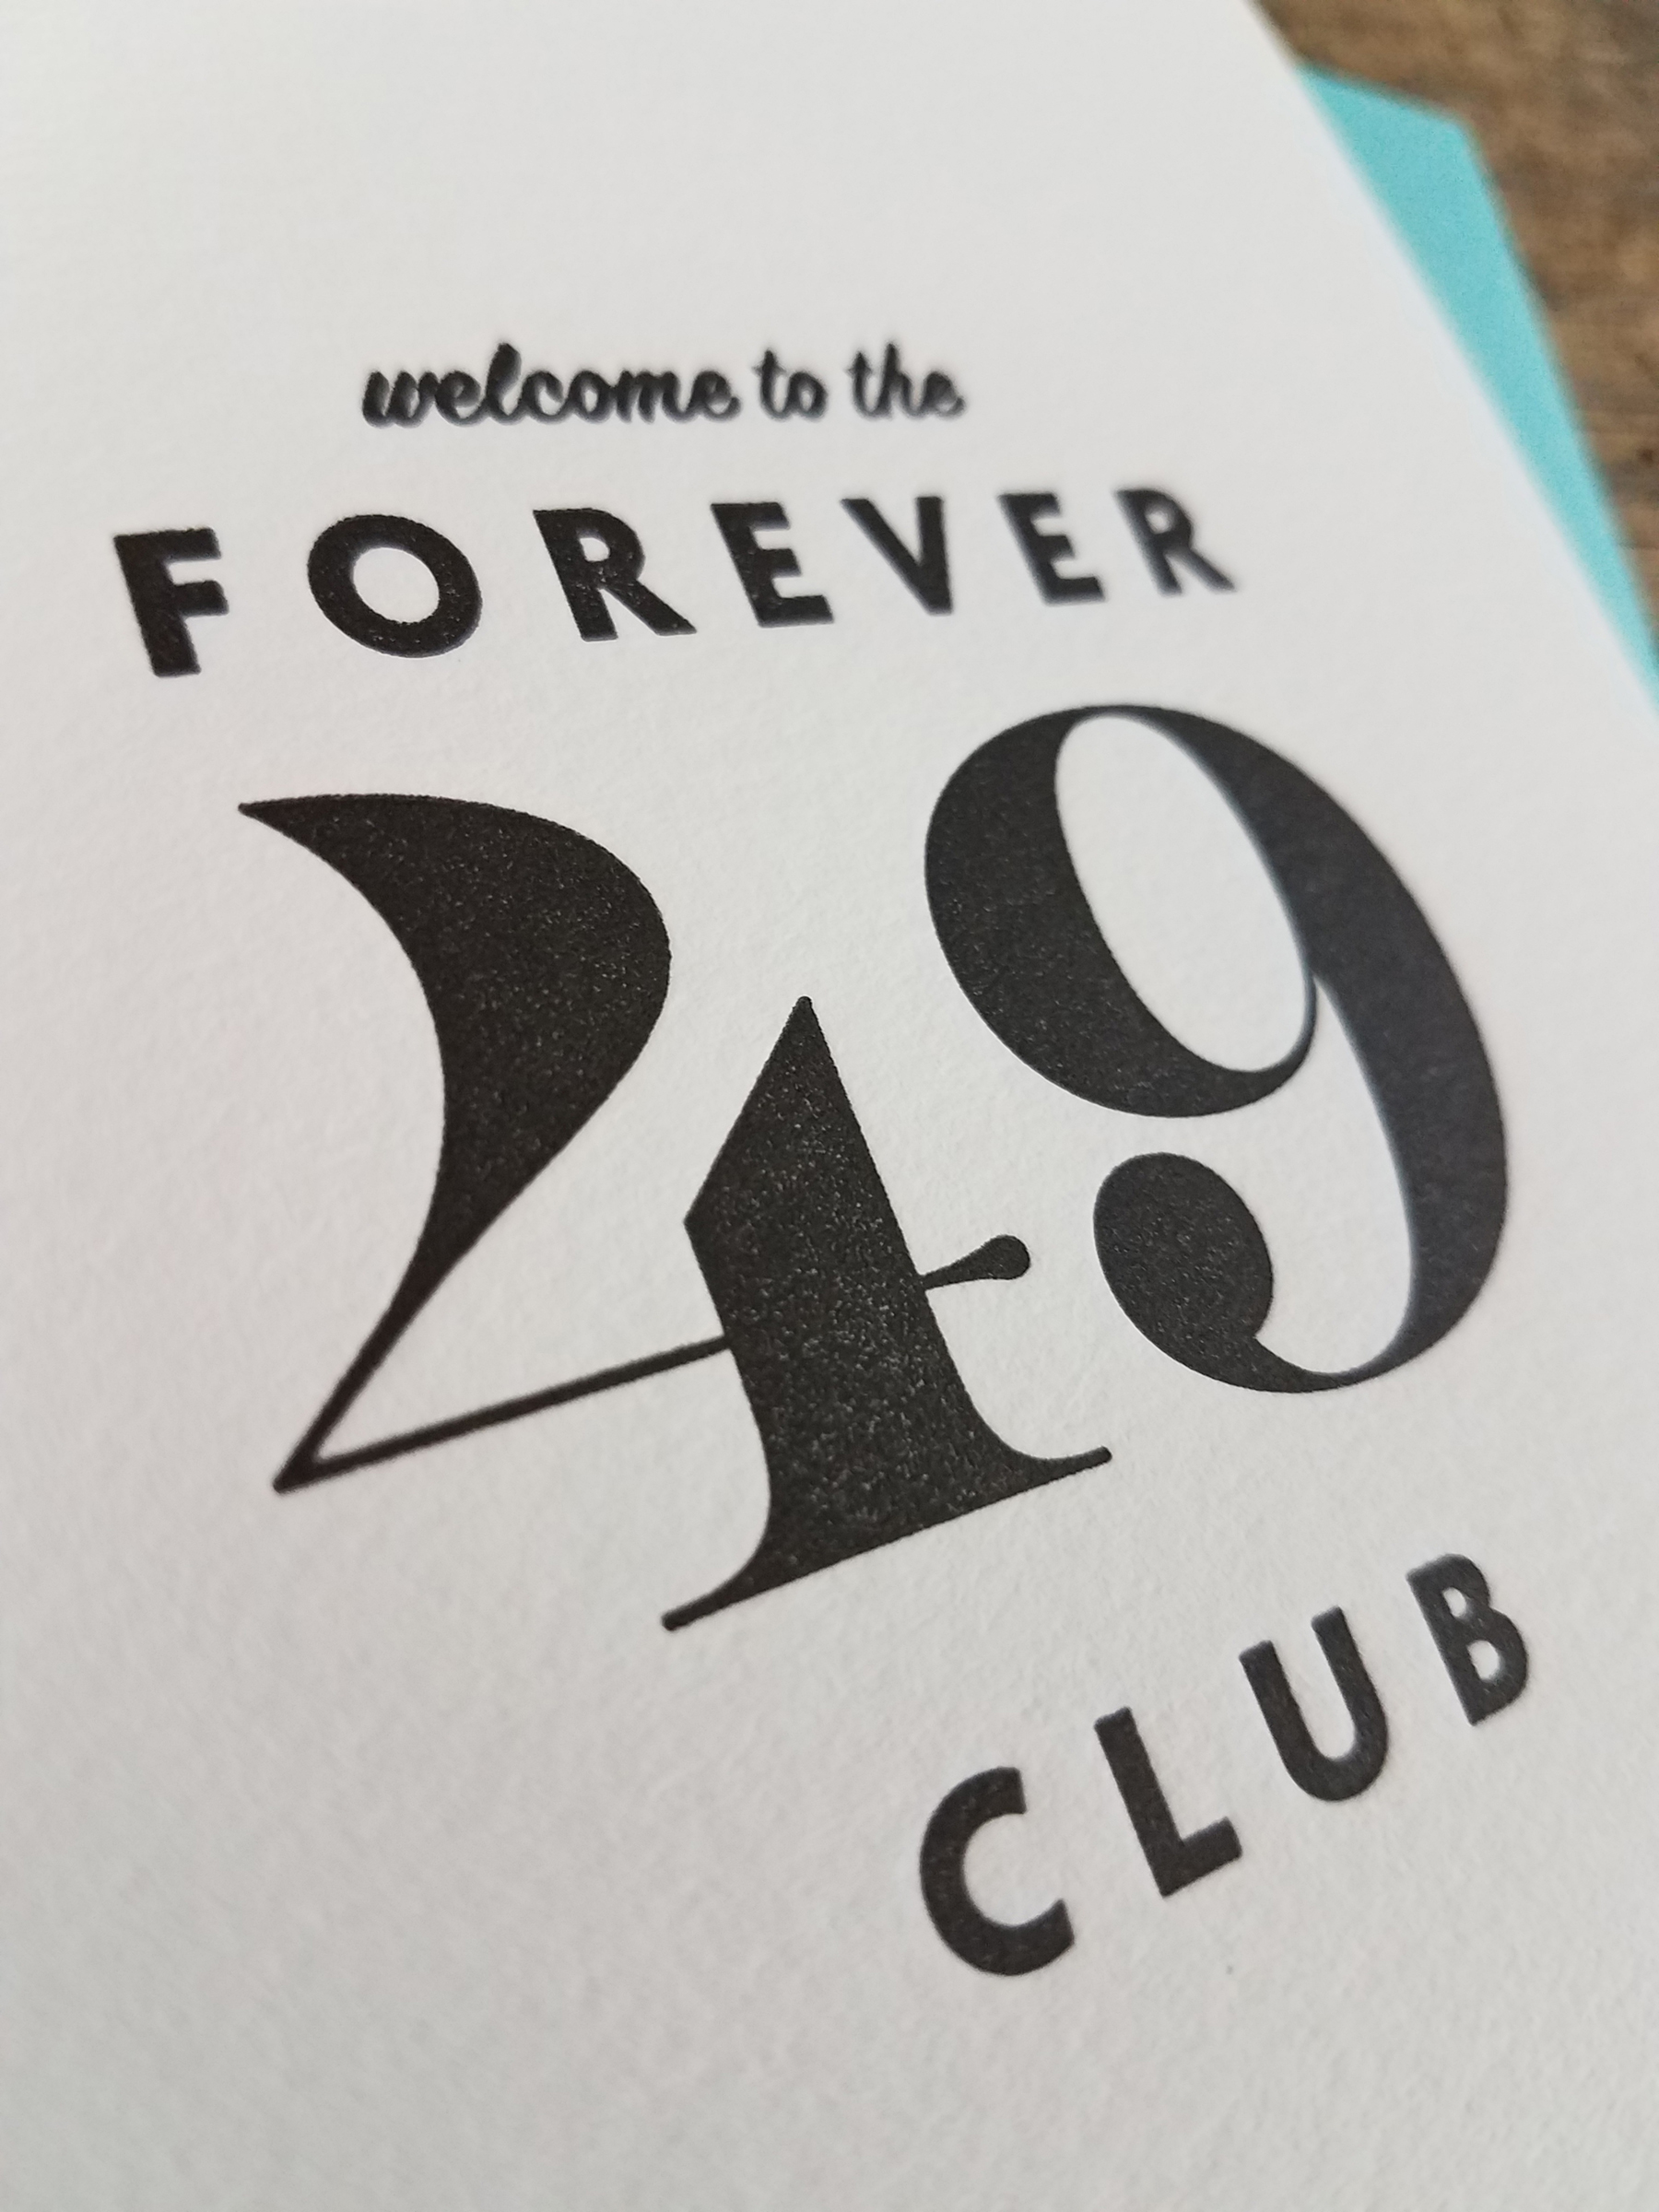 Welcome to the forever 49 club letterpress greeting card iron home greeting cards birthday welcome to the forever 49 club letterpress greeting card m4hsunfo